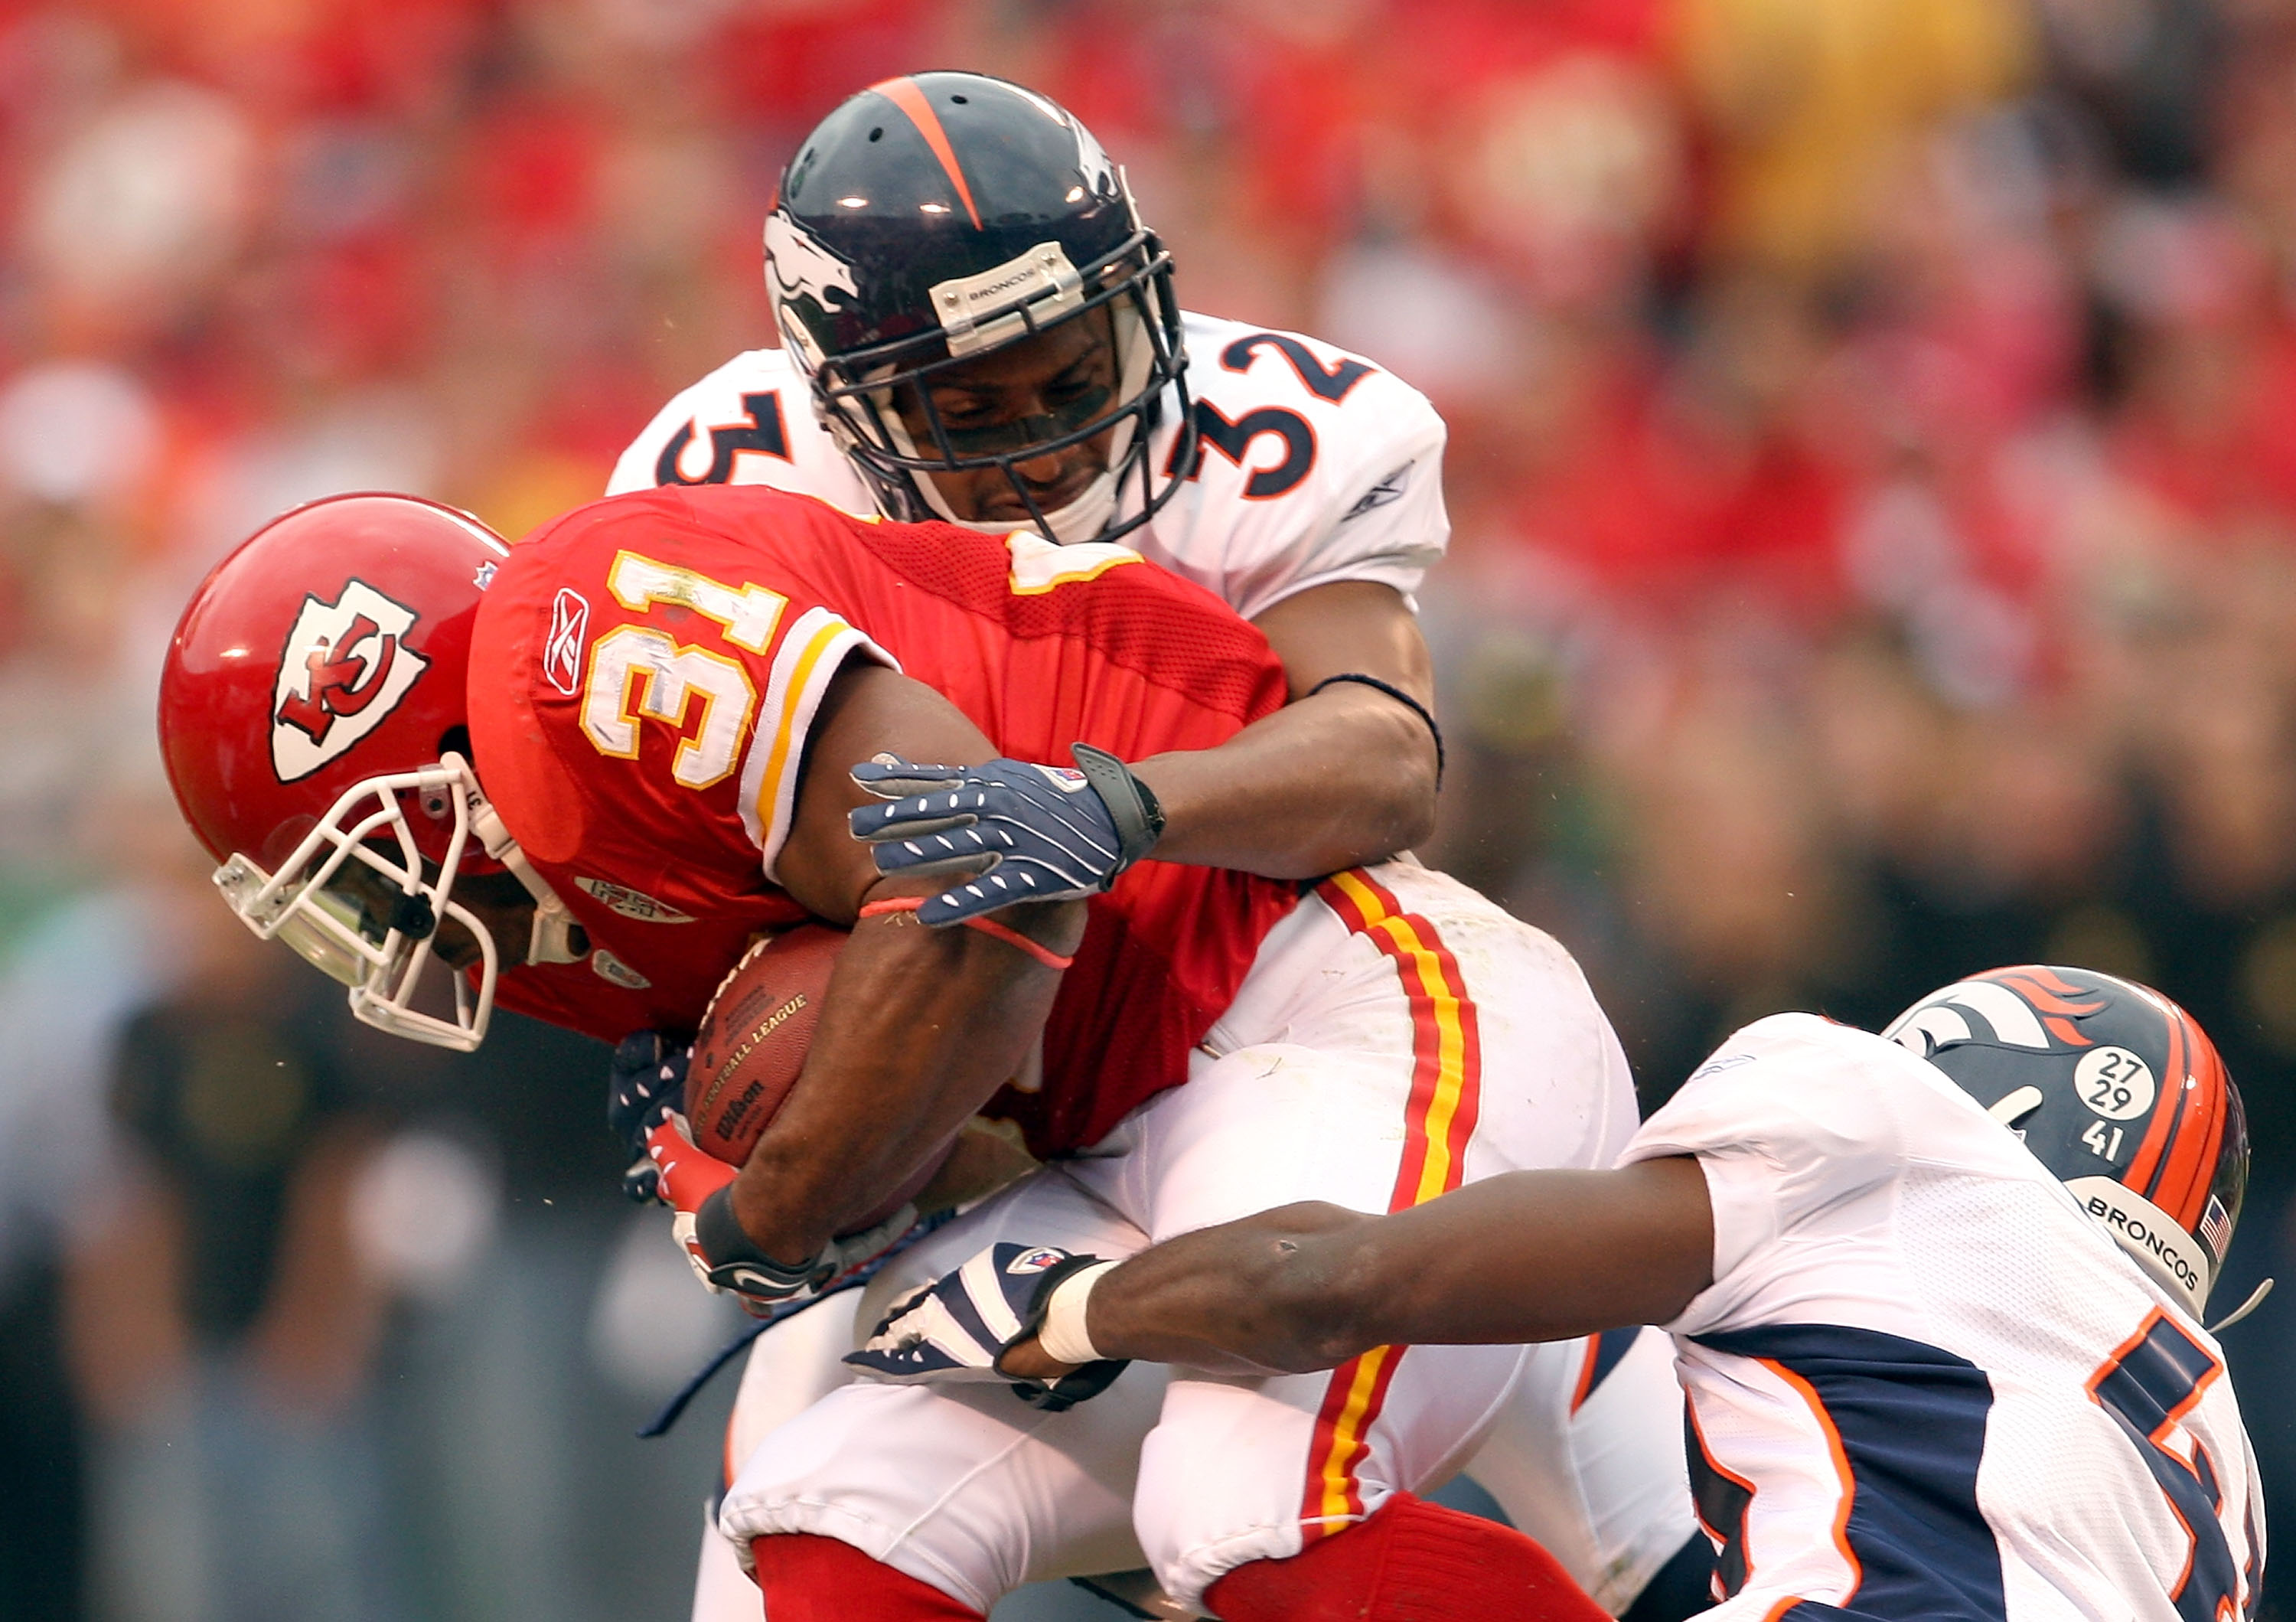 KANSAS CITY, MO - NOVEMBER 11:  Priest Holmes #31 of the Kansas City Chiefs carries the ball as Dre Bly #32 of the Denver Broncos defends during the first half of the game on November 11, 2007 at Arrowhead Stadium in Kansas City, Missouri.  (Photo by Jami